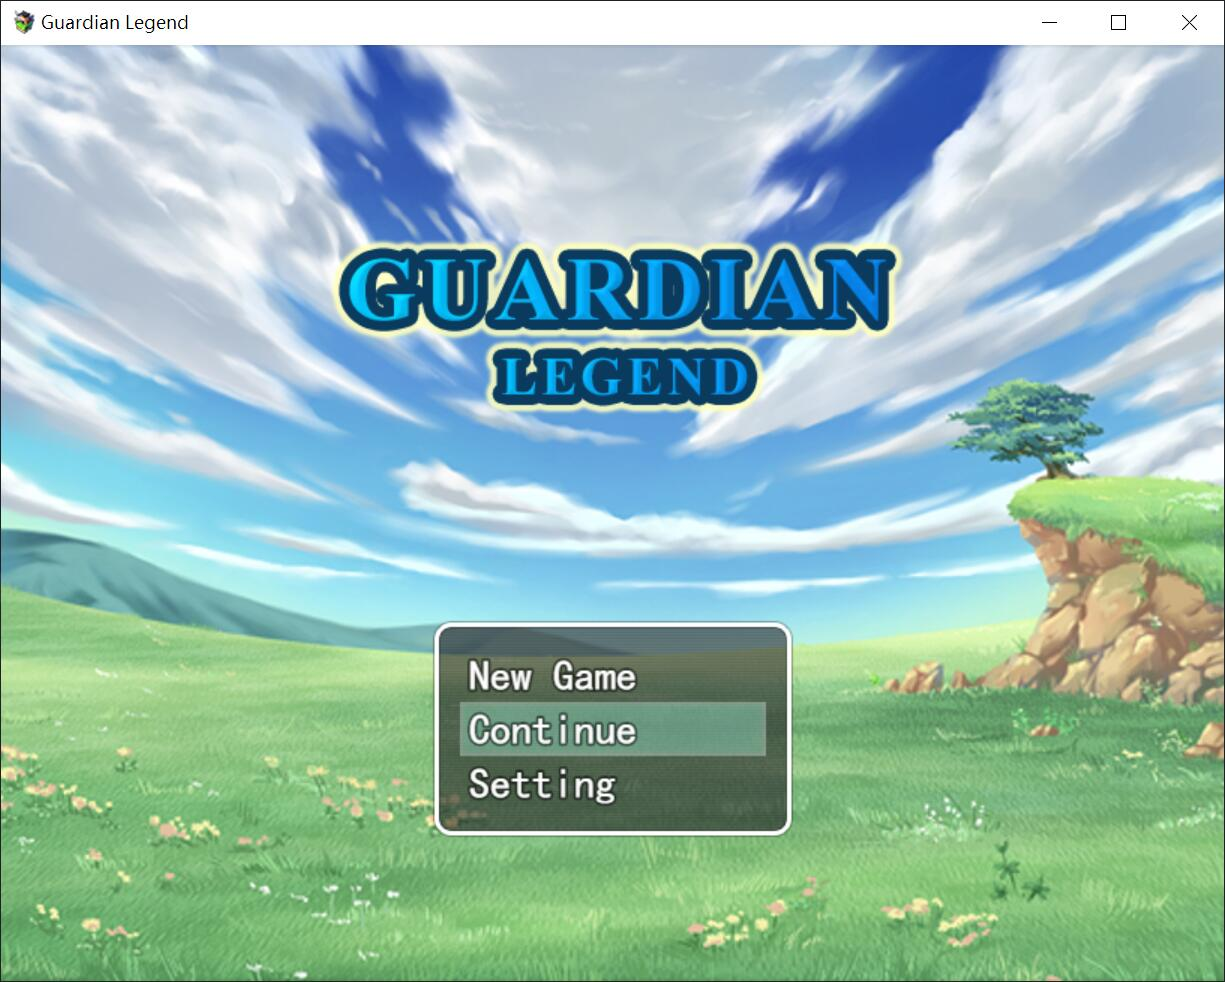 Guardian Legend: How to Switch English Version